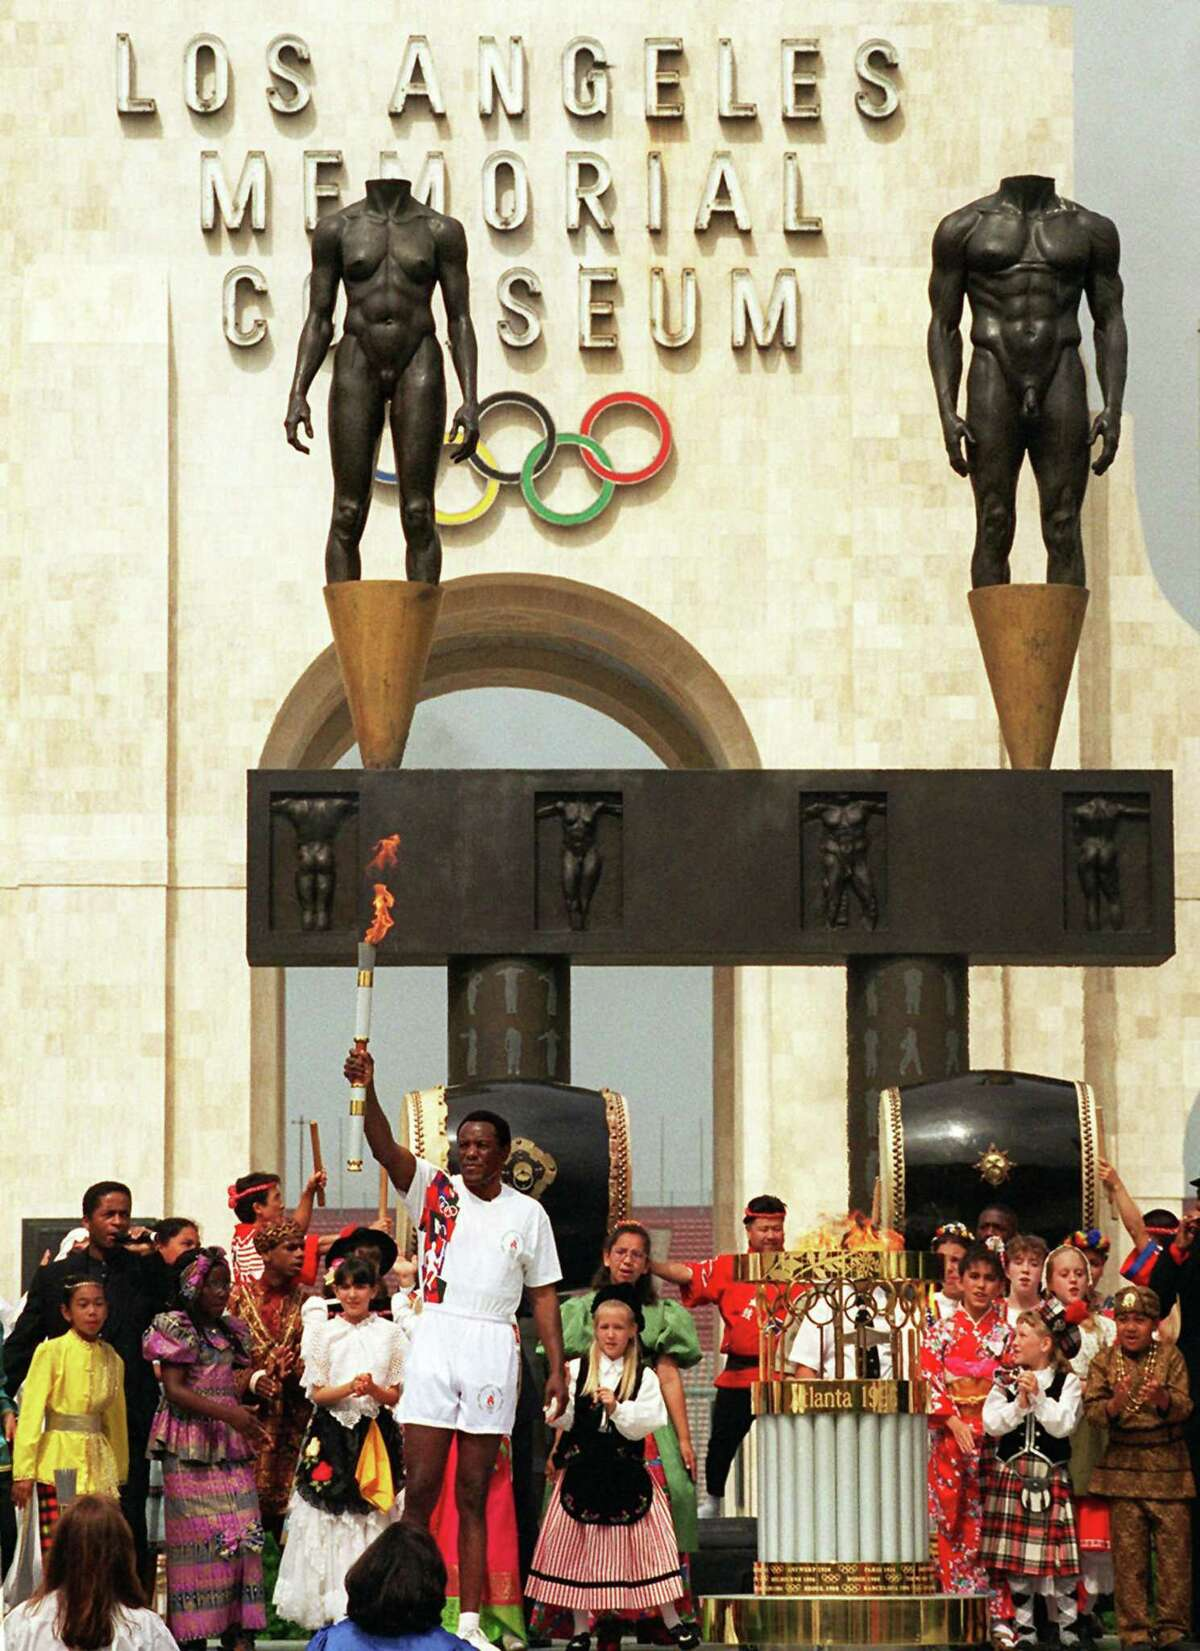 In this April 27, 1996 photo, Olympic decathlon champion Rafer Johnson, who was the last person to carry the torch on its international journey to the 1984 Summer Olympics in Los Angeles, displays the torch with the Olympic flame after its arrival at the Los Angeles Memorial Coliseum in Los Angeles. The U.S. Olympic Committee on Sept. 1, 2015 named Los Angeles as its candidate for the 2024 Games.